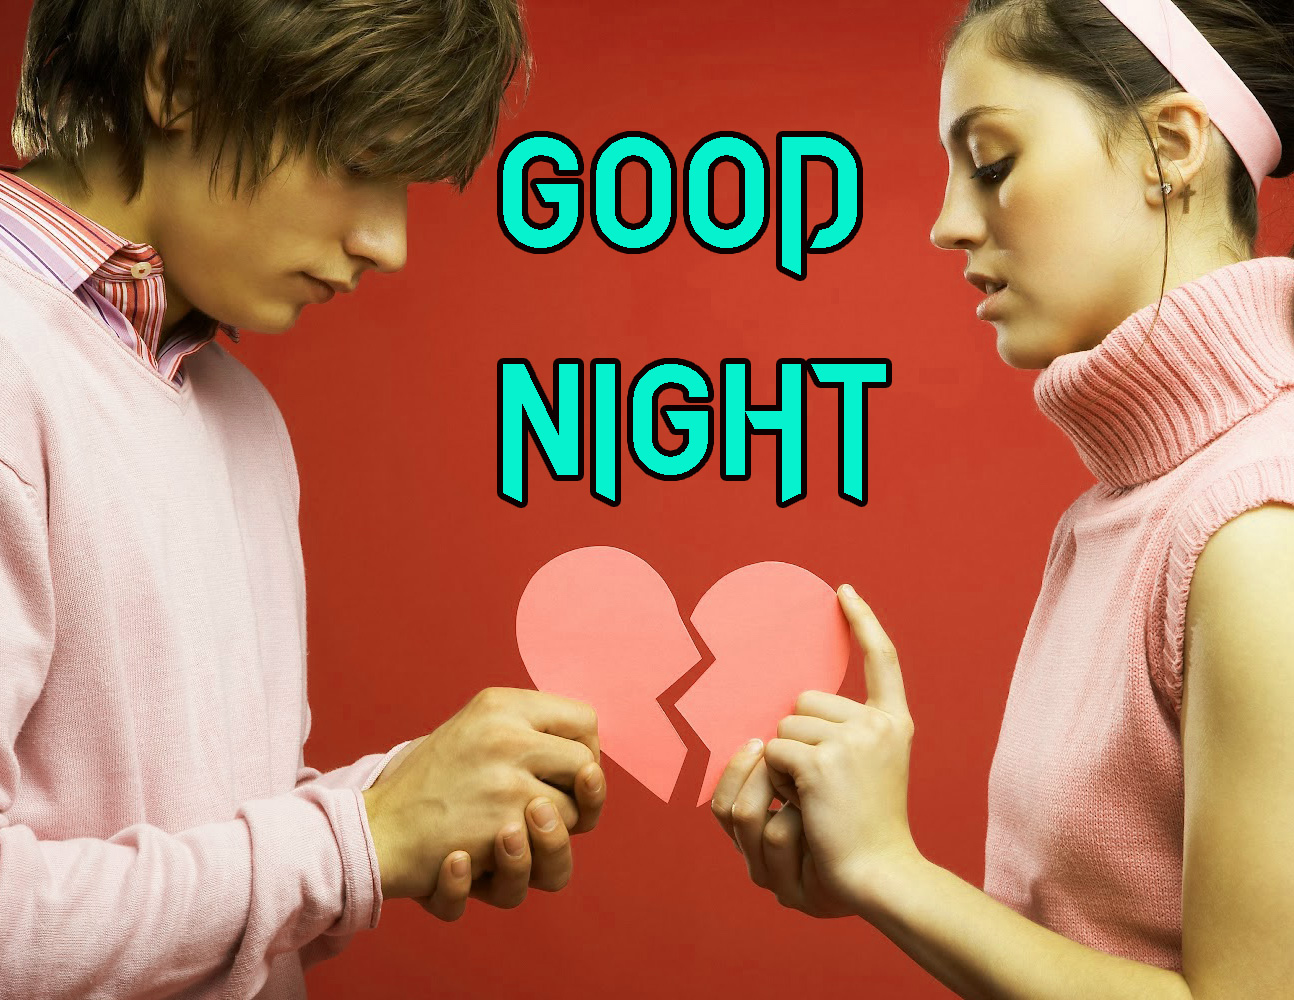 BOYFRIEND & GIRLFRIEND LOVER GOOD NIGHT IMAGES PHOTO WALLPAPER FOR WHATSAPP